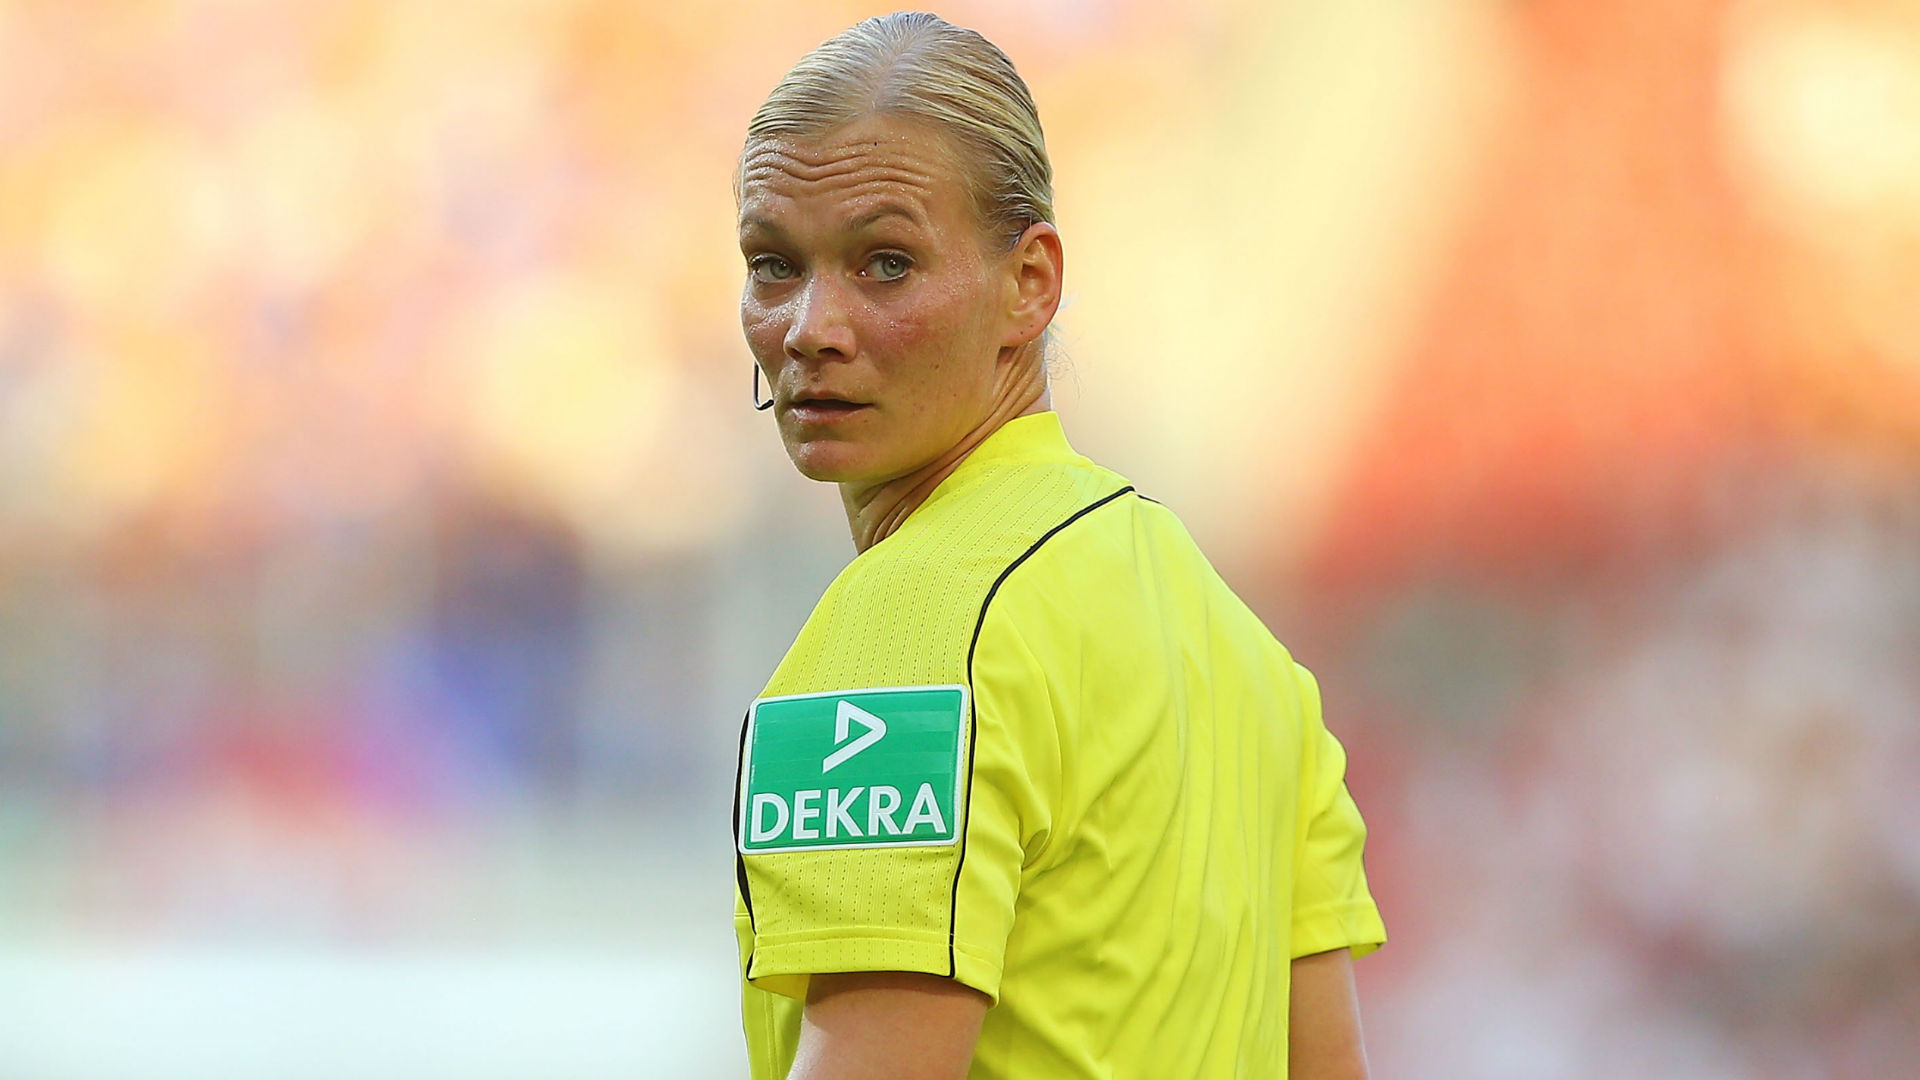 Bibiana Steinhaus becomes the Bundesliga's first female referee